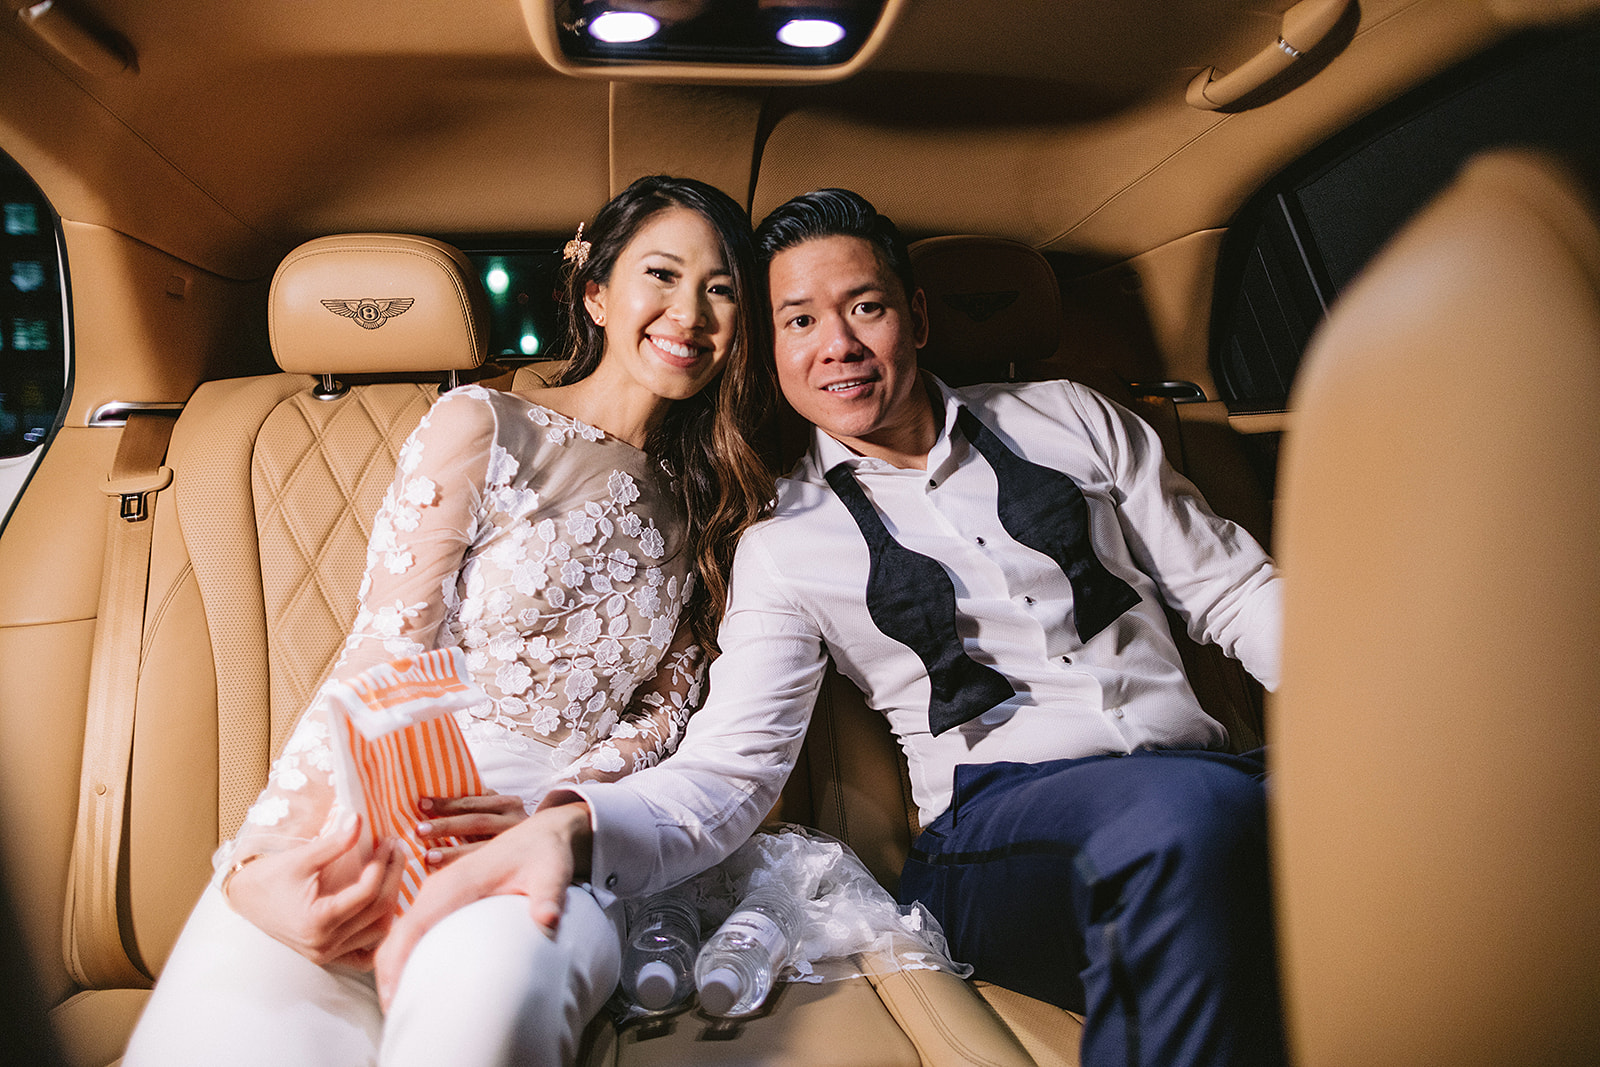 For Michelle and Soo's Modern Luxe wedding in the heart of downtown Houston, Spell Events…whataburger late night snack